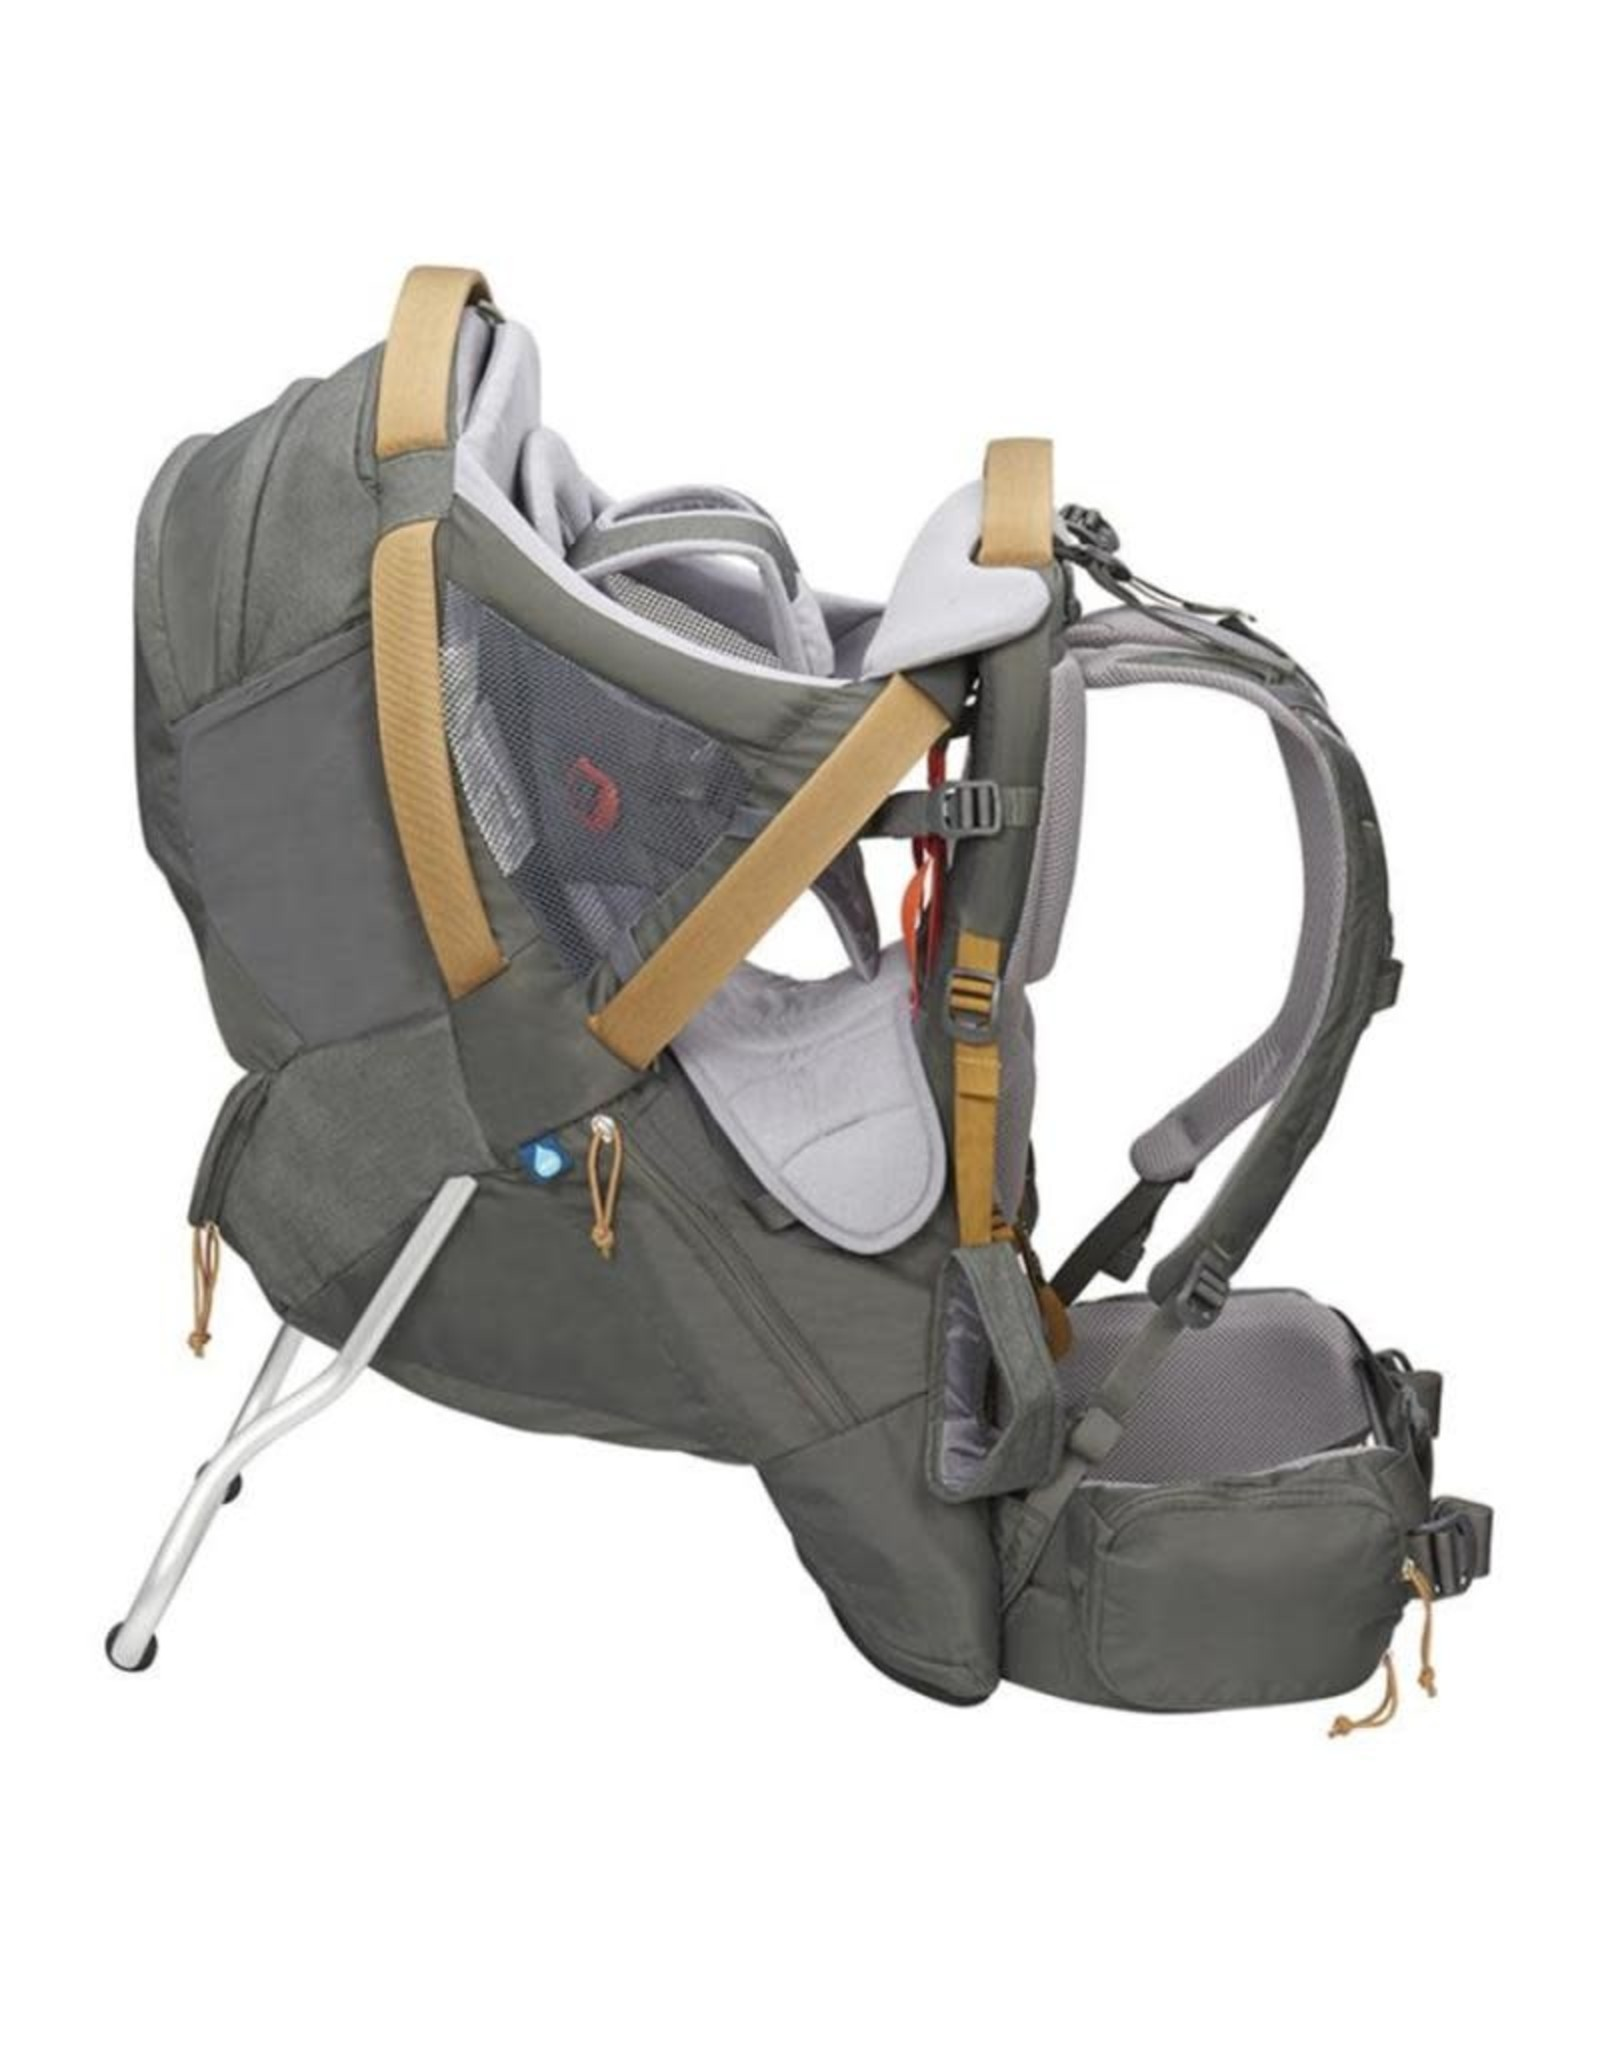 Kelty Journey Perfectfit Elite Child Carrier Backpack